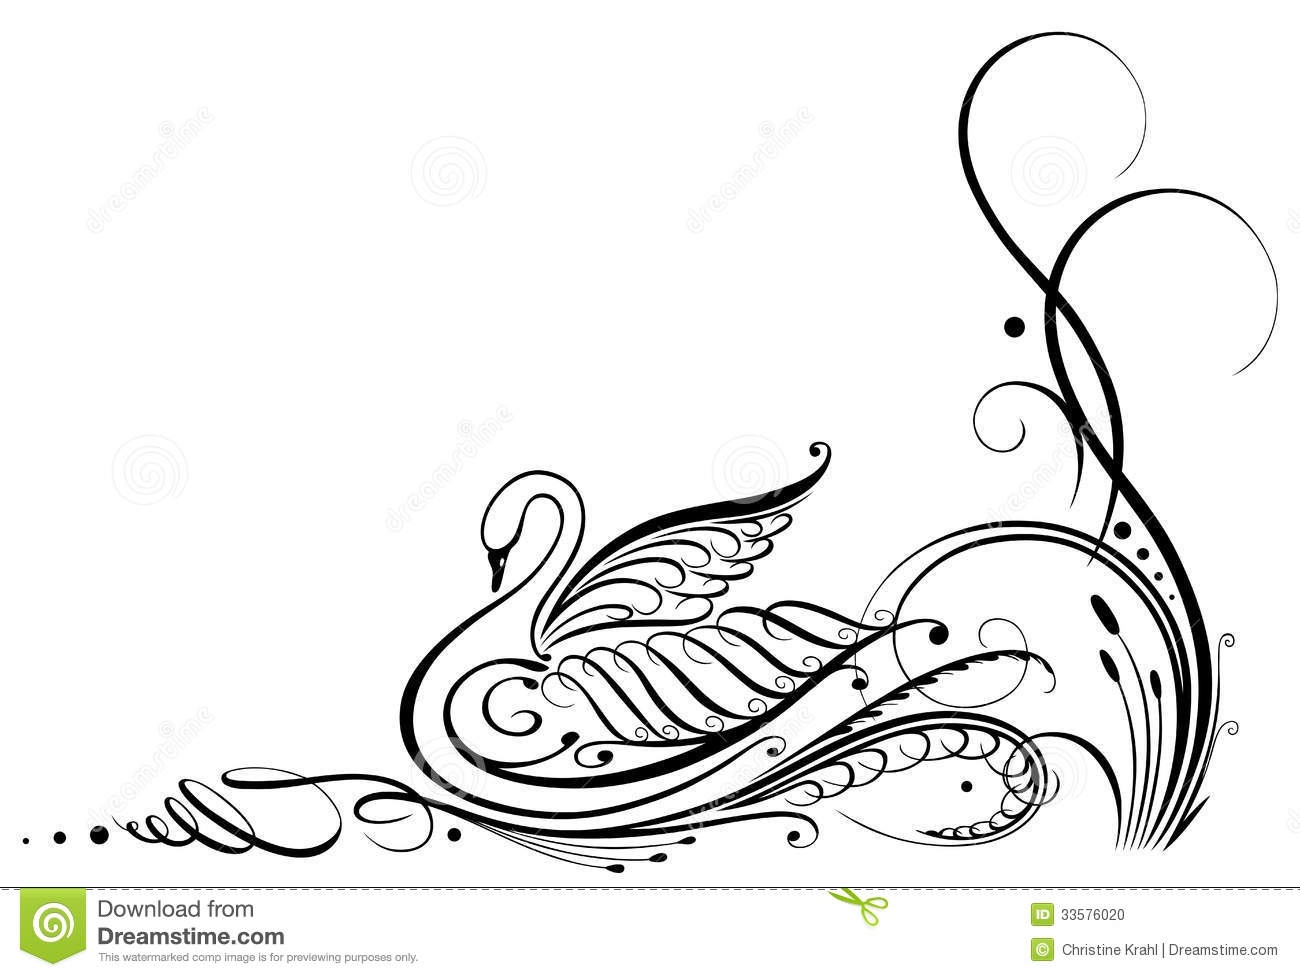 Keystone Cougar Wiring Diagram moreover Stock Photo Calligraphy Swan Black Filigree Illustration Image33576020 furthermore Sitemap additionally Install Electrical further 333063. on rv trailer plans